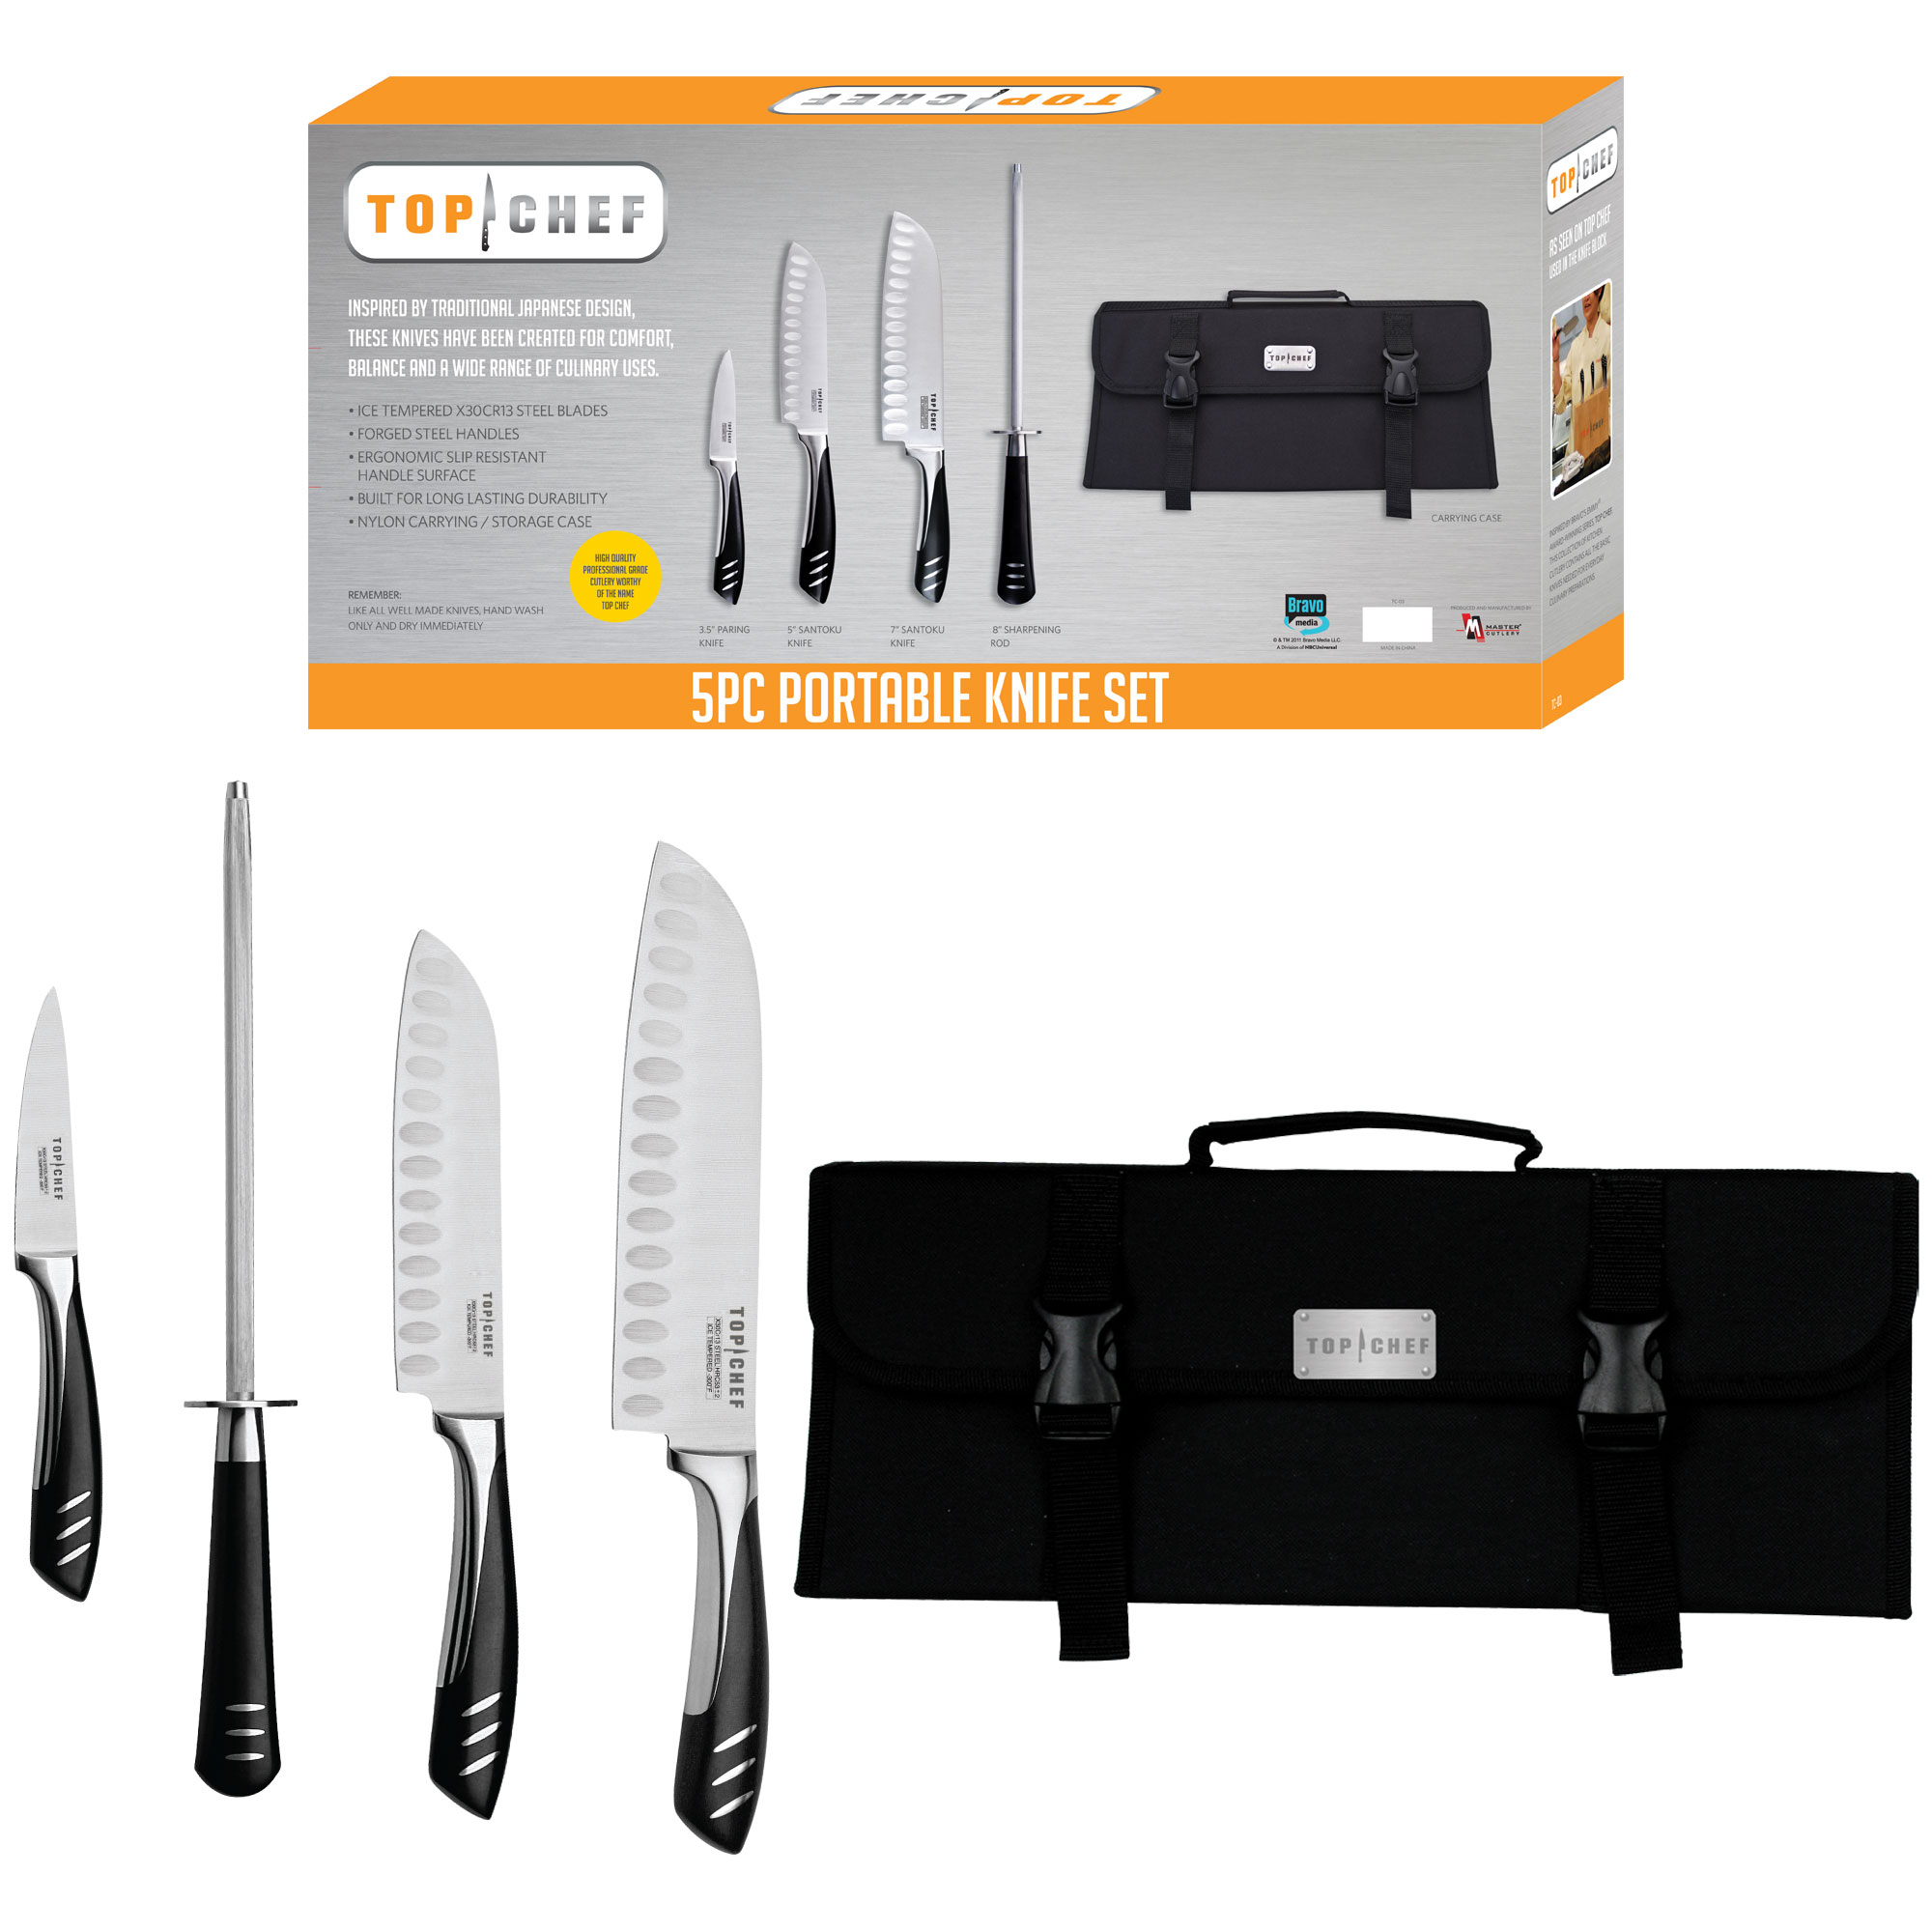 Details about Top Chef™ Basic Stainless Steel Knife Set - 5 Pieces